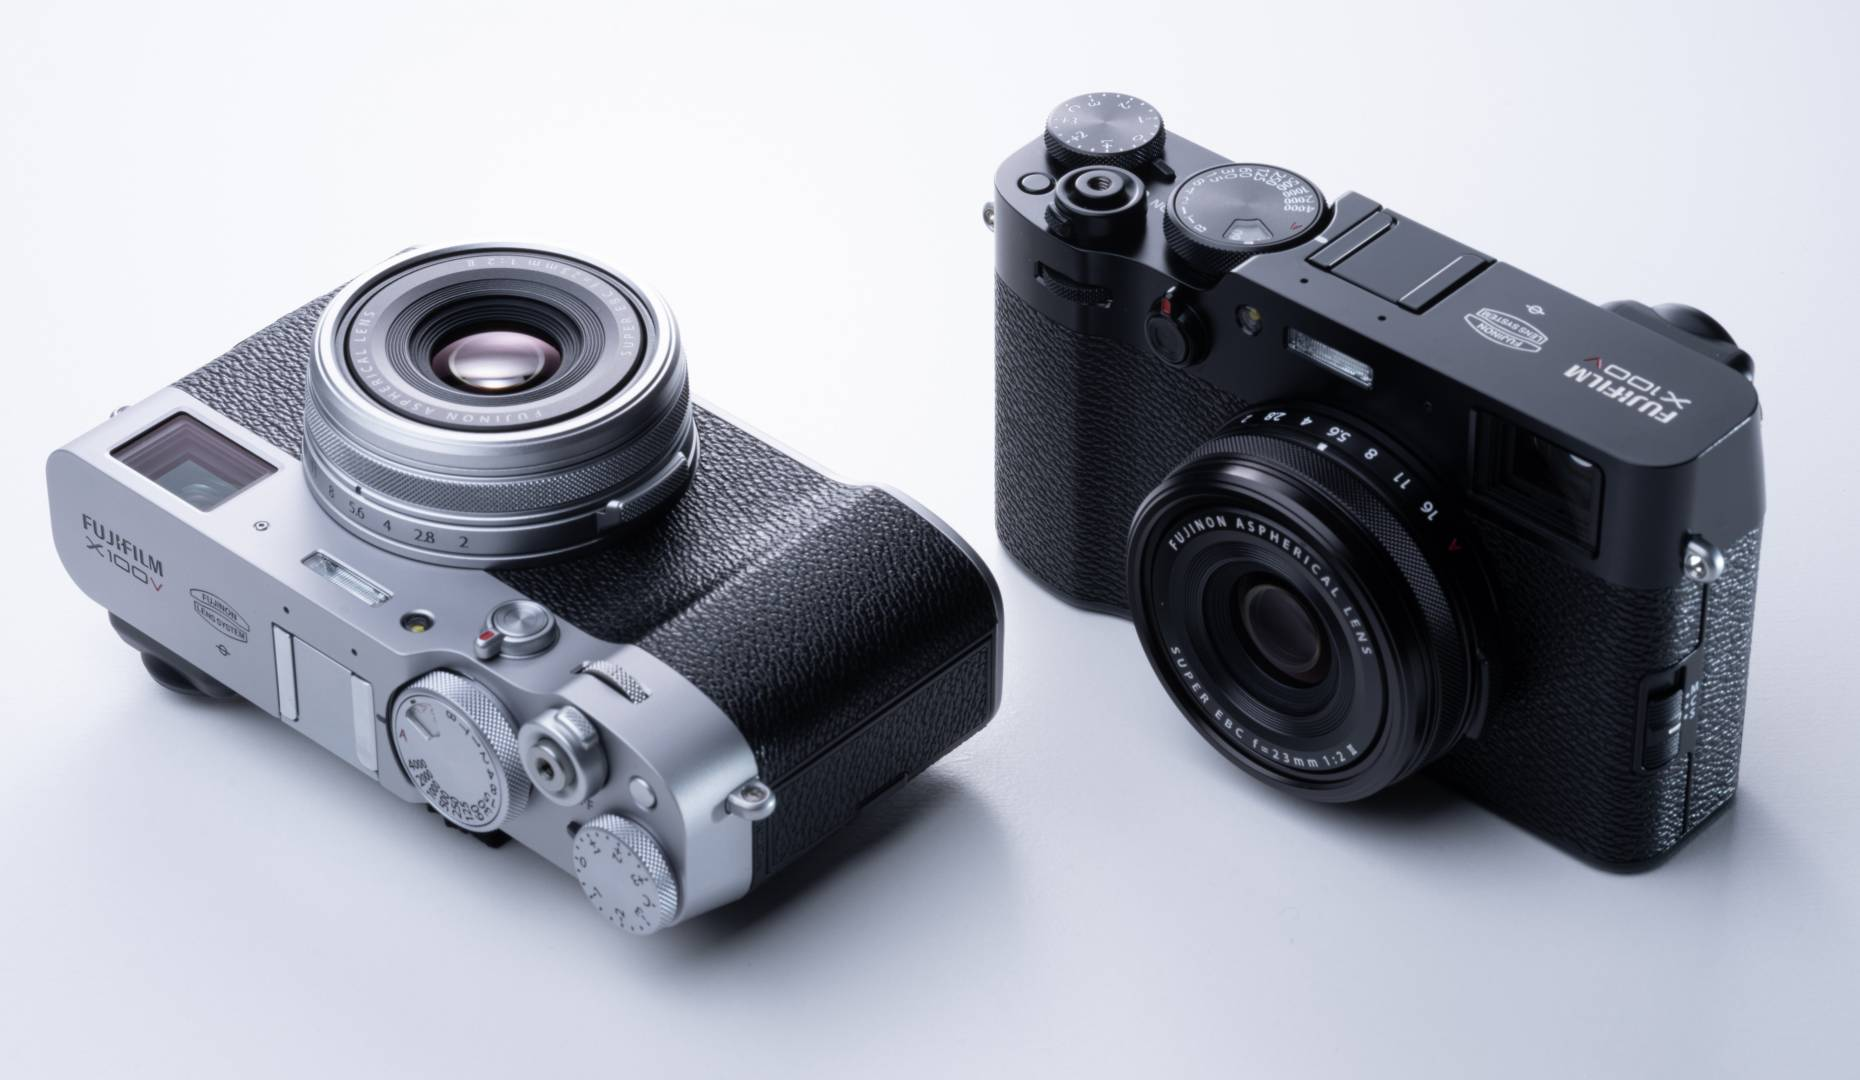 The silver model arrives on February 27 with the all-black X100V following a month later.